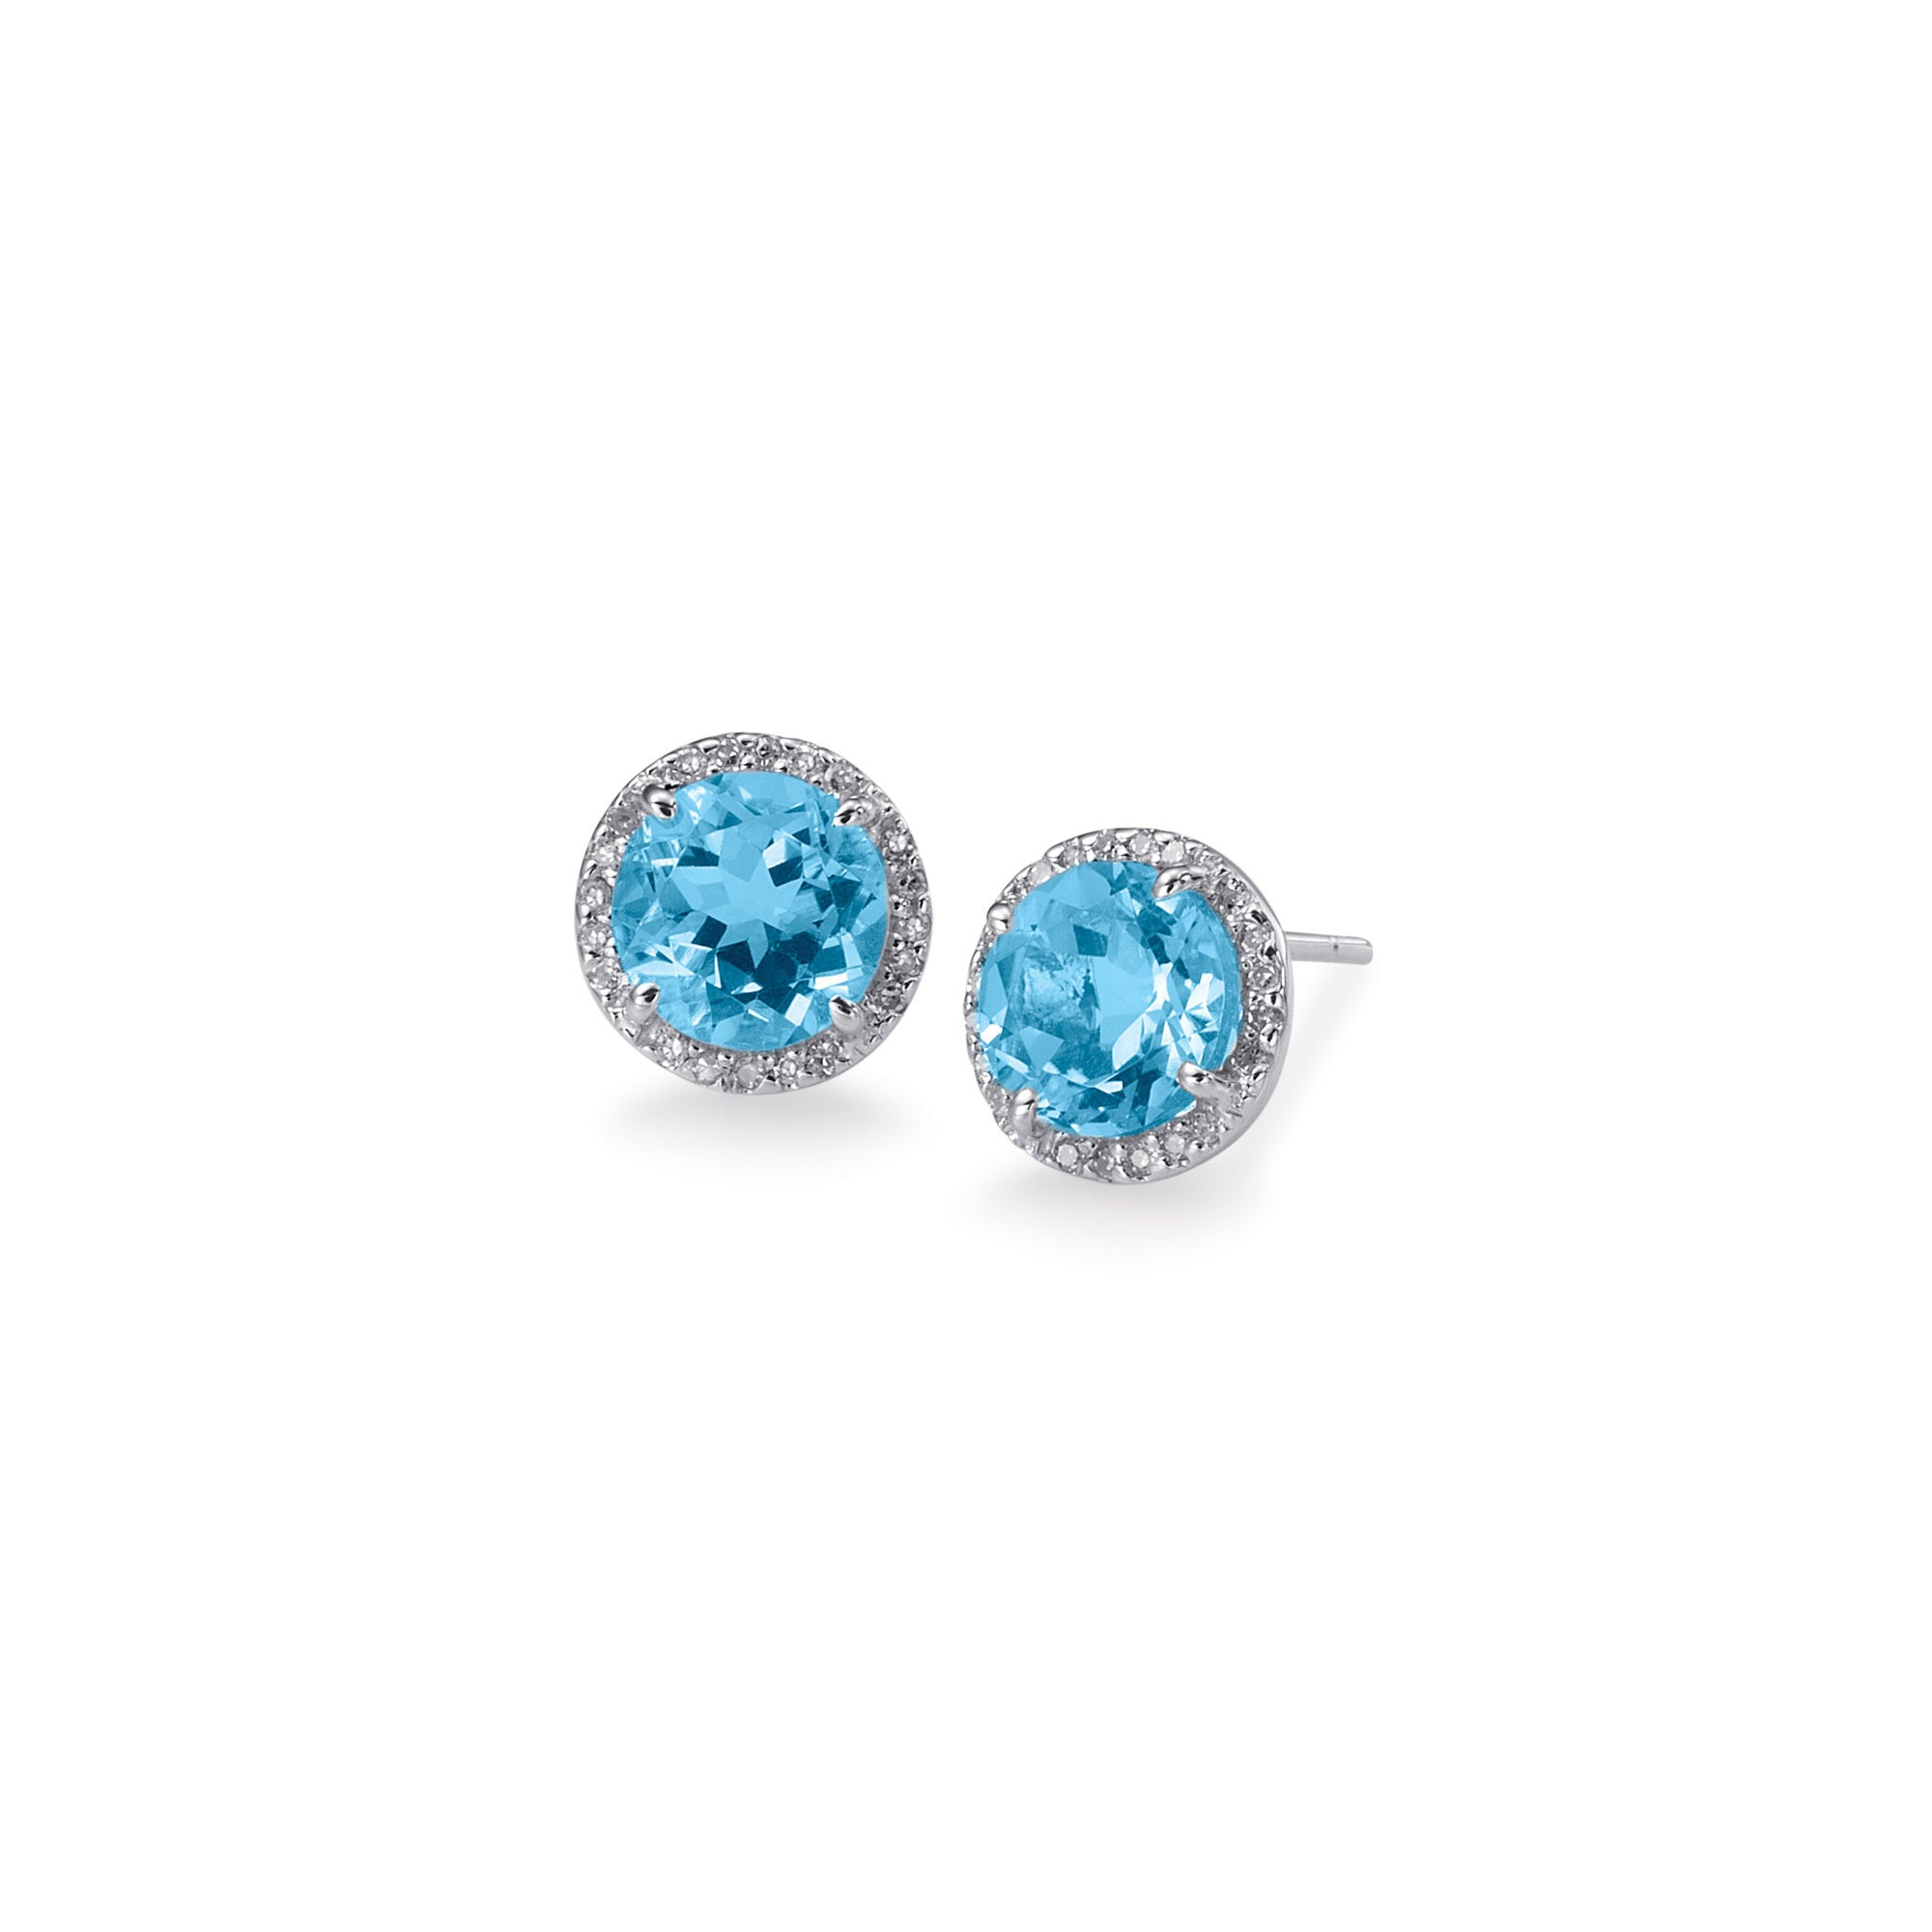 diamond blue l earrings studs princess tw carat stud jewellery cut earring topaz